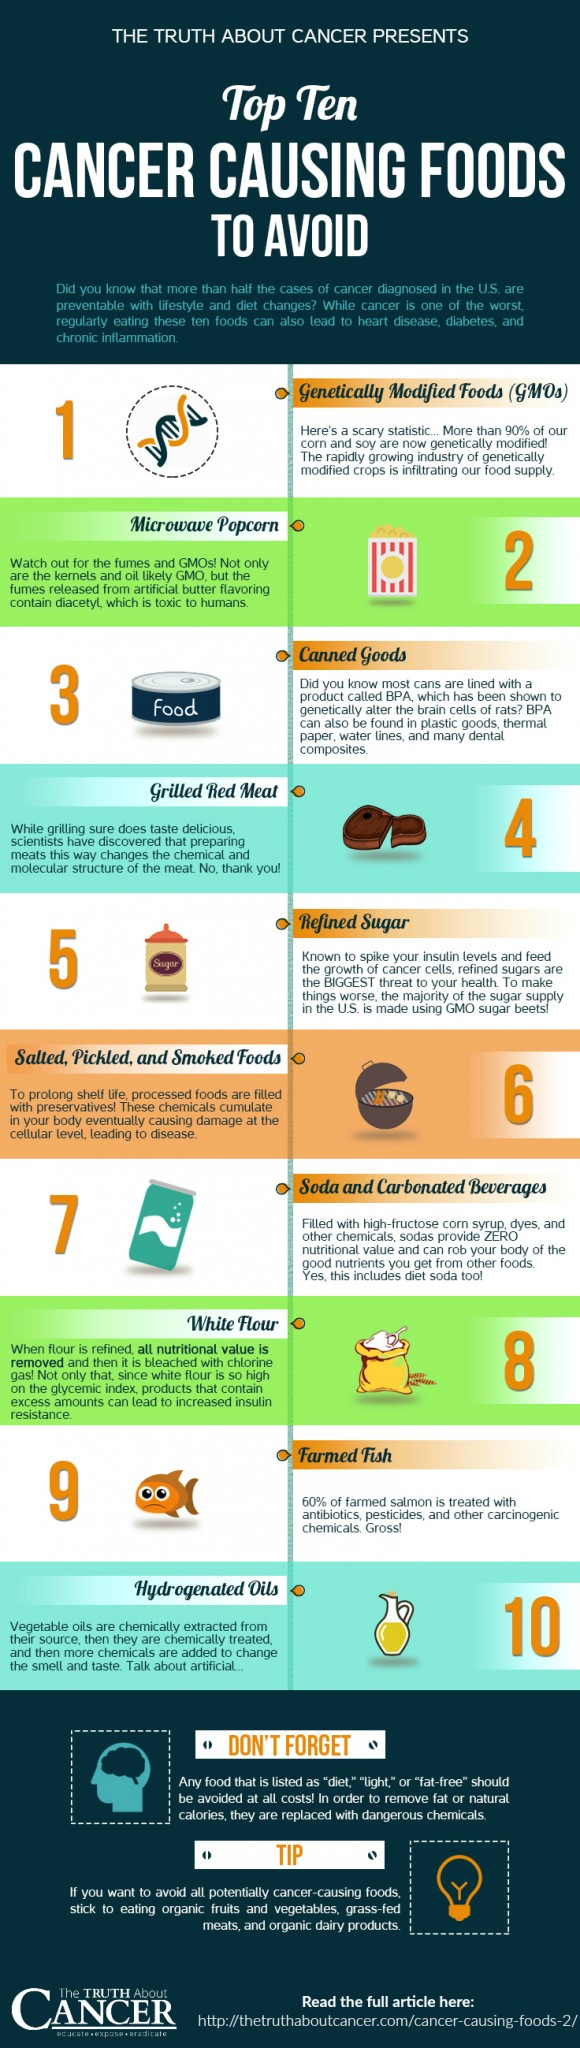 Top Ten Cancer Causing Foods to Avoid